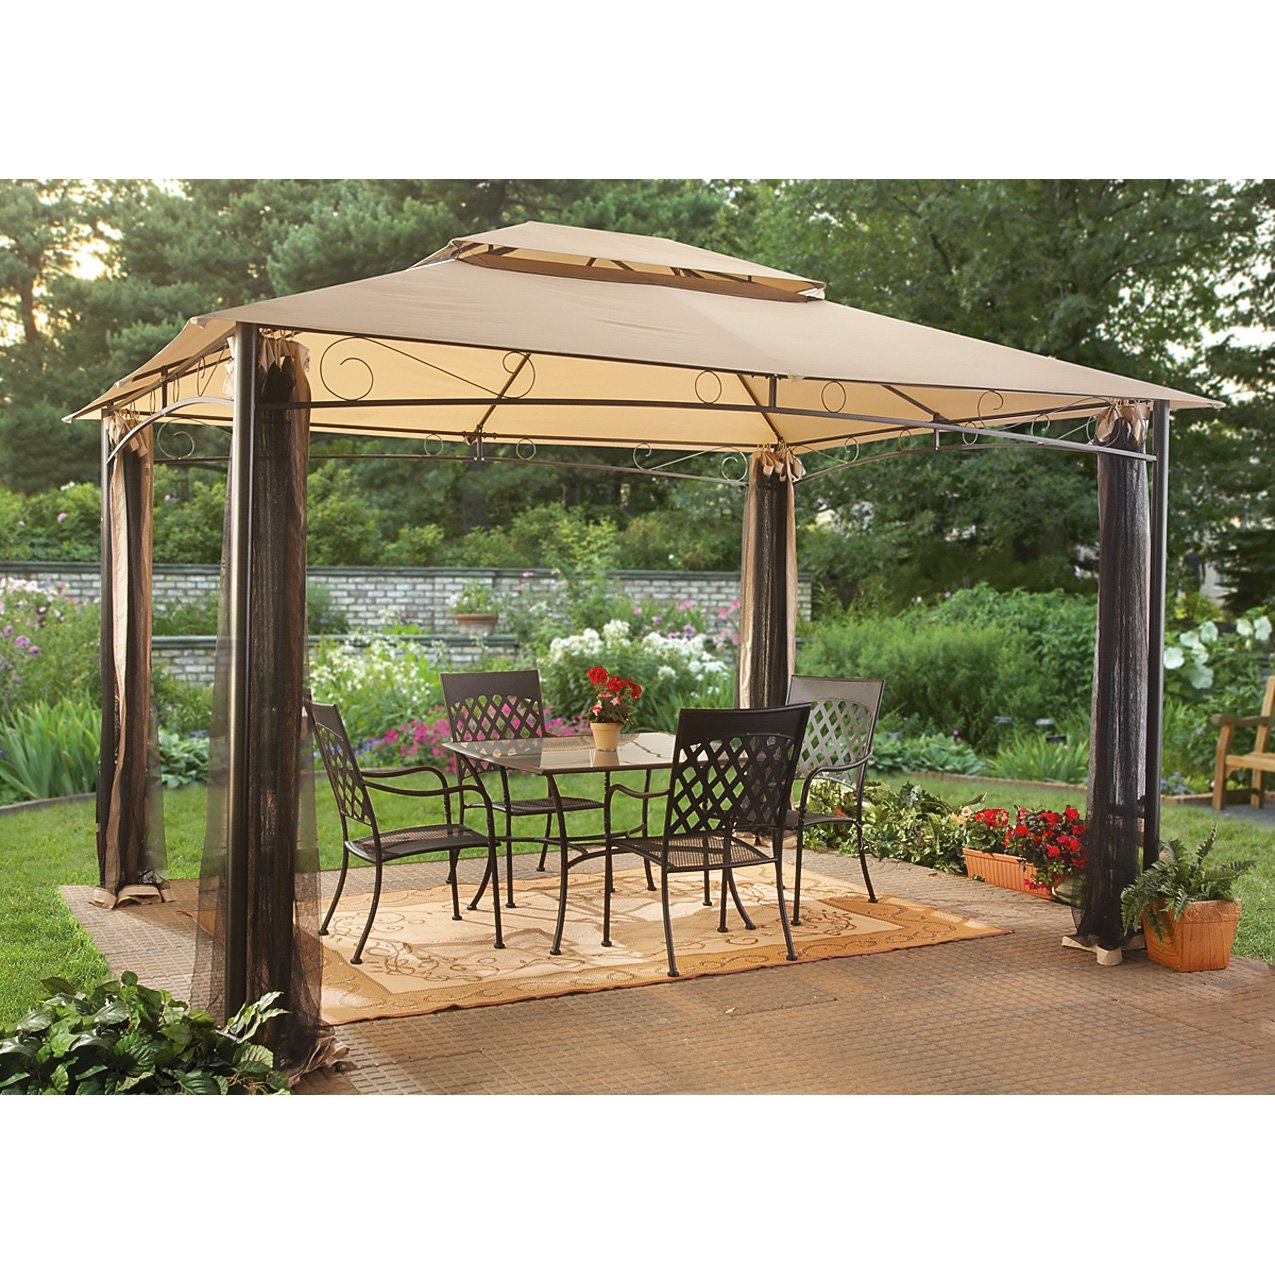 castlecreek classic garden gazebo home decor and. Black Bedroom Furniture Sets. Home Design Ideas